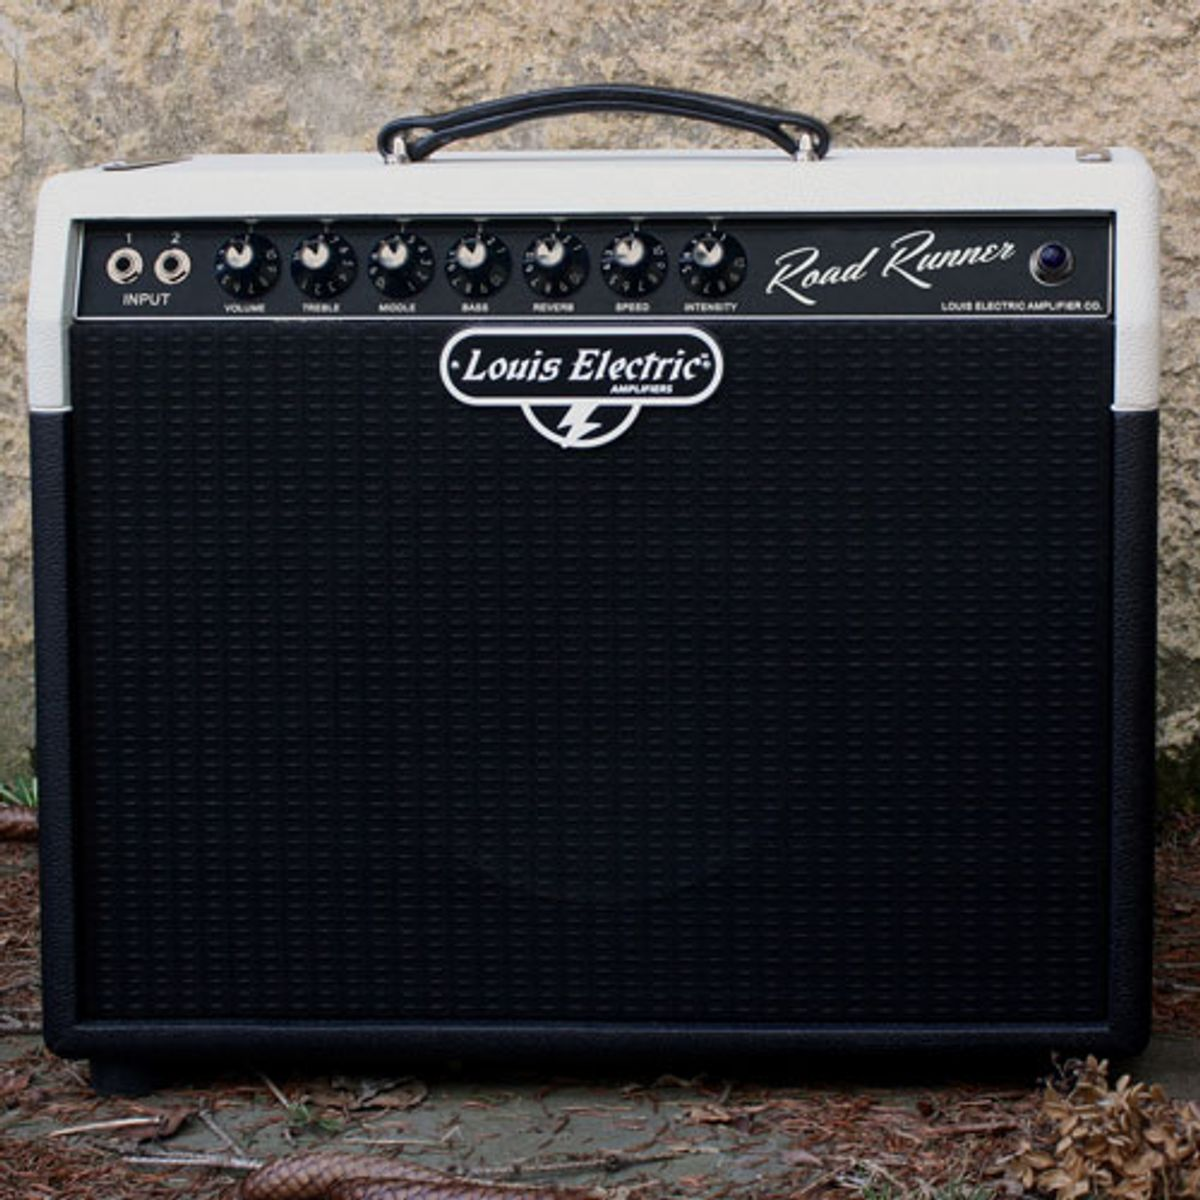 Louis Electric Amps Introduces the Road Runner